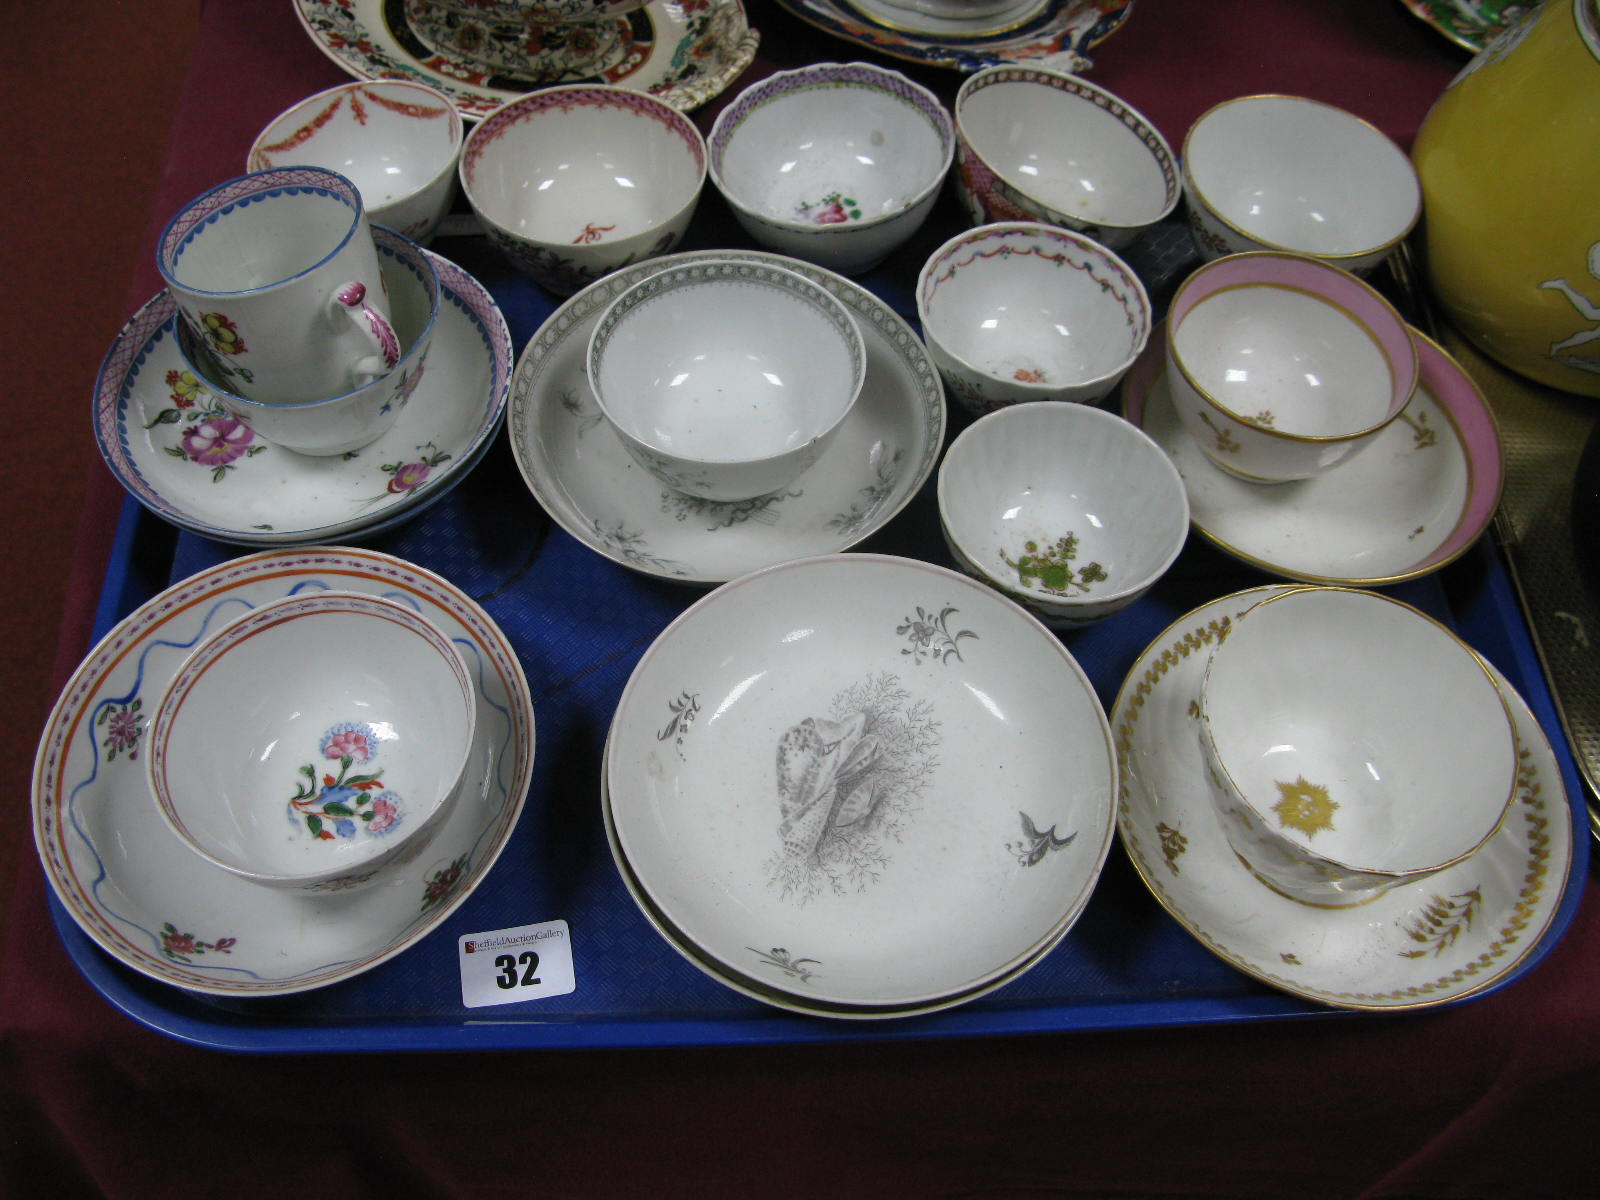 Lot 32 - XVIII Century English Pottery Tea Bowls and Saucers, (some damages):- One Tray